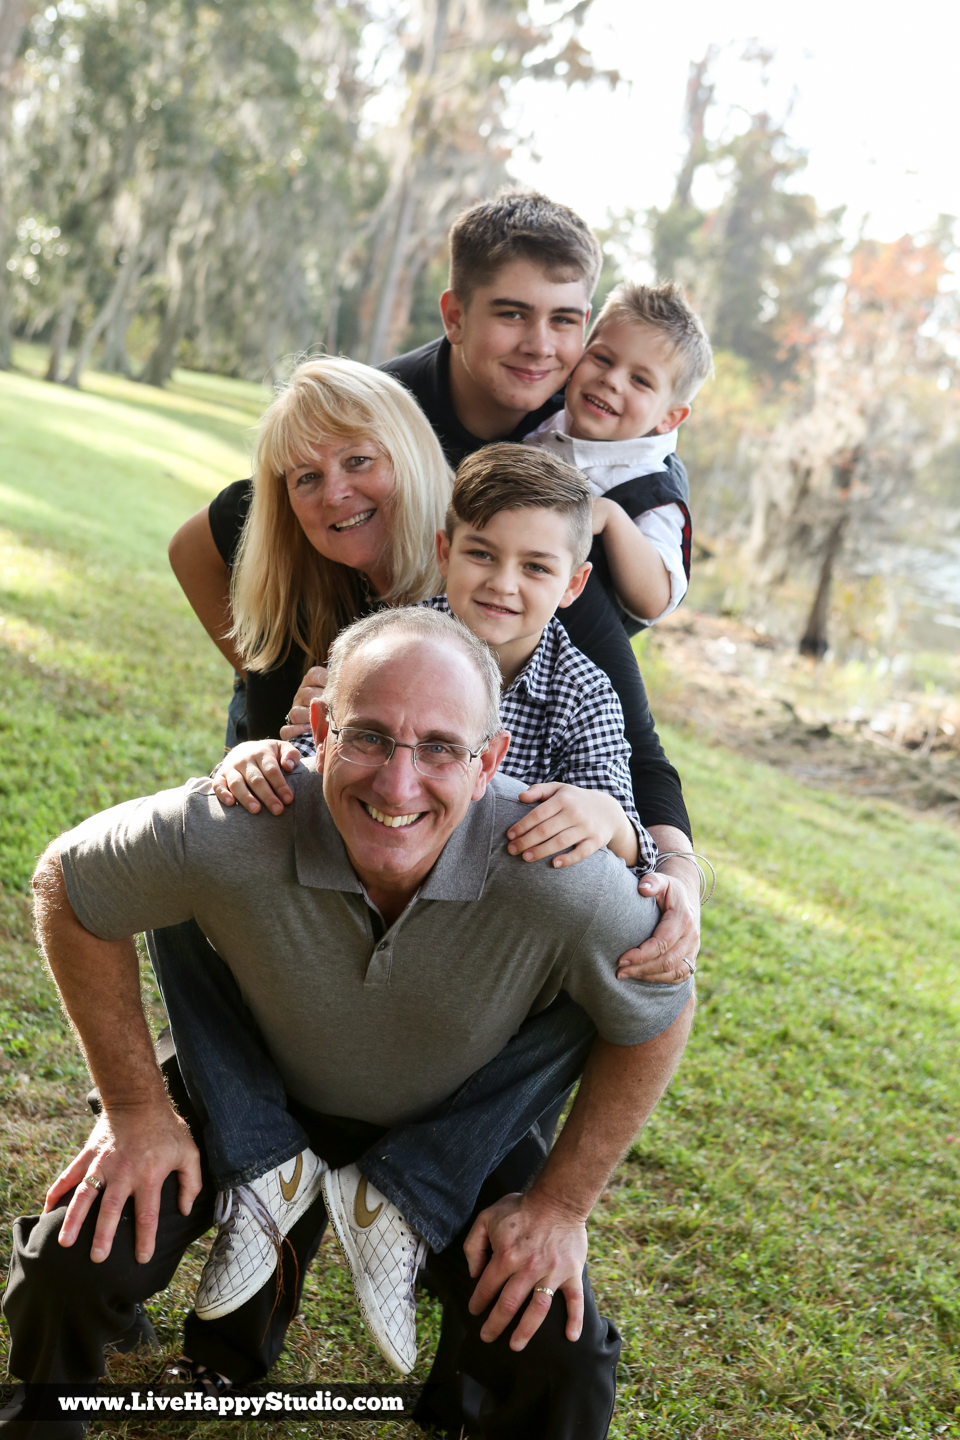 www.livehappystudio.com-family-session-photography-orlando--39.jpg